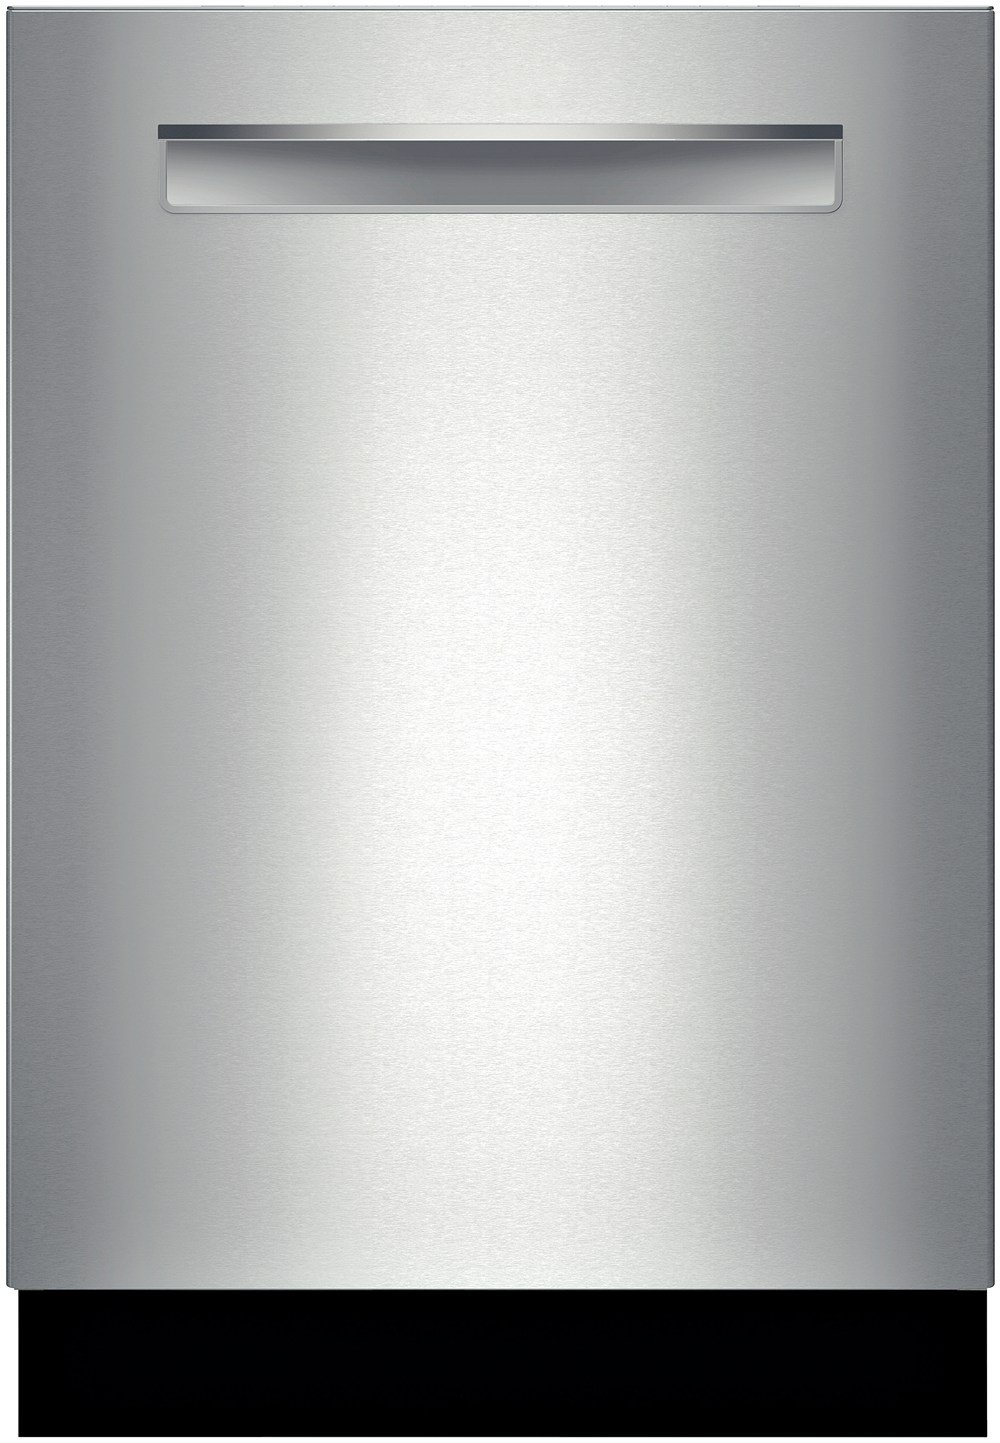 Bosch SHP65T55UC 500 24-inch Stainless Steel Fully Integrated Dishwasher - Energy Star